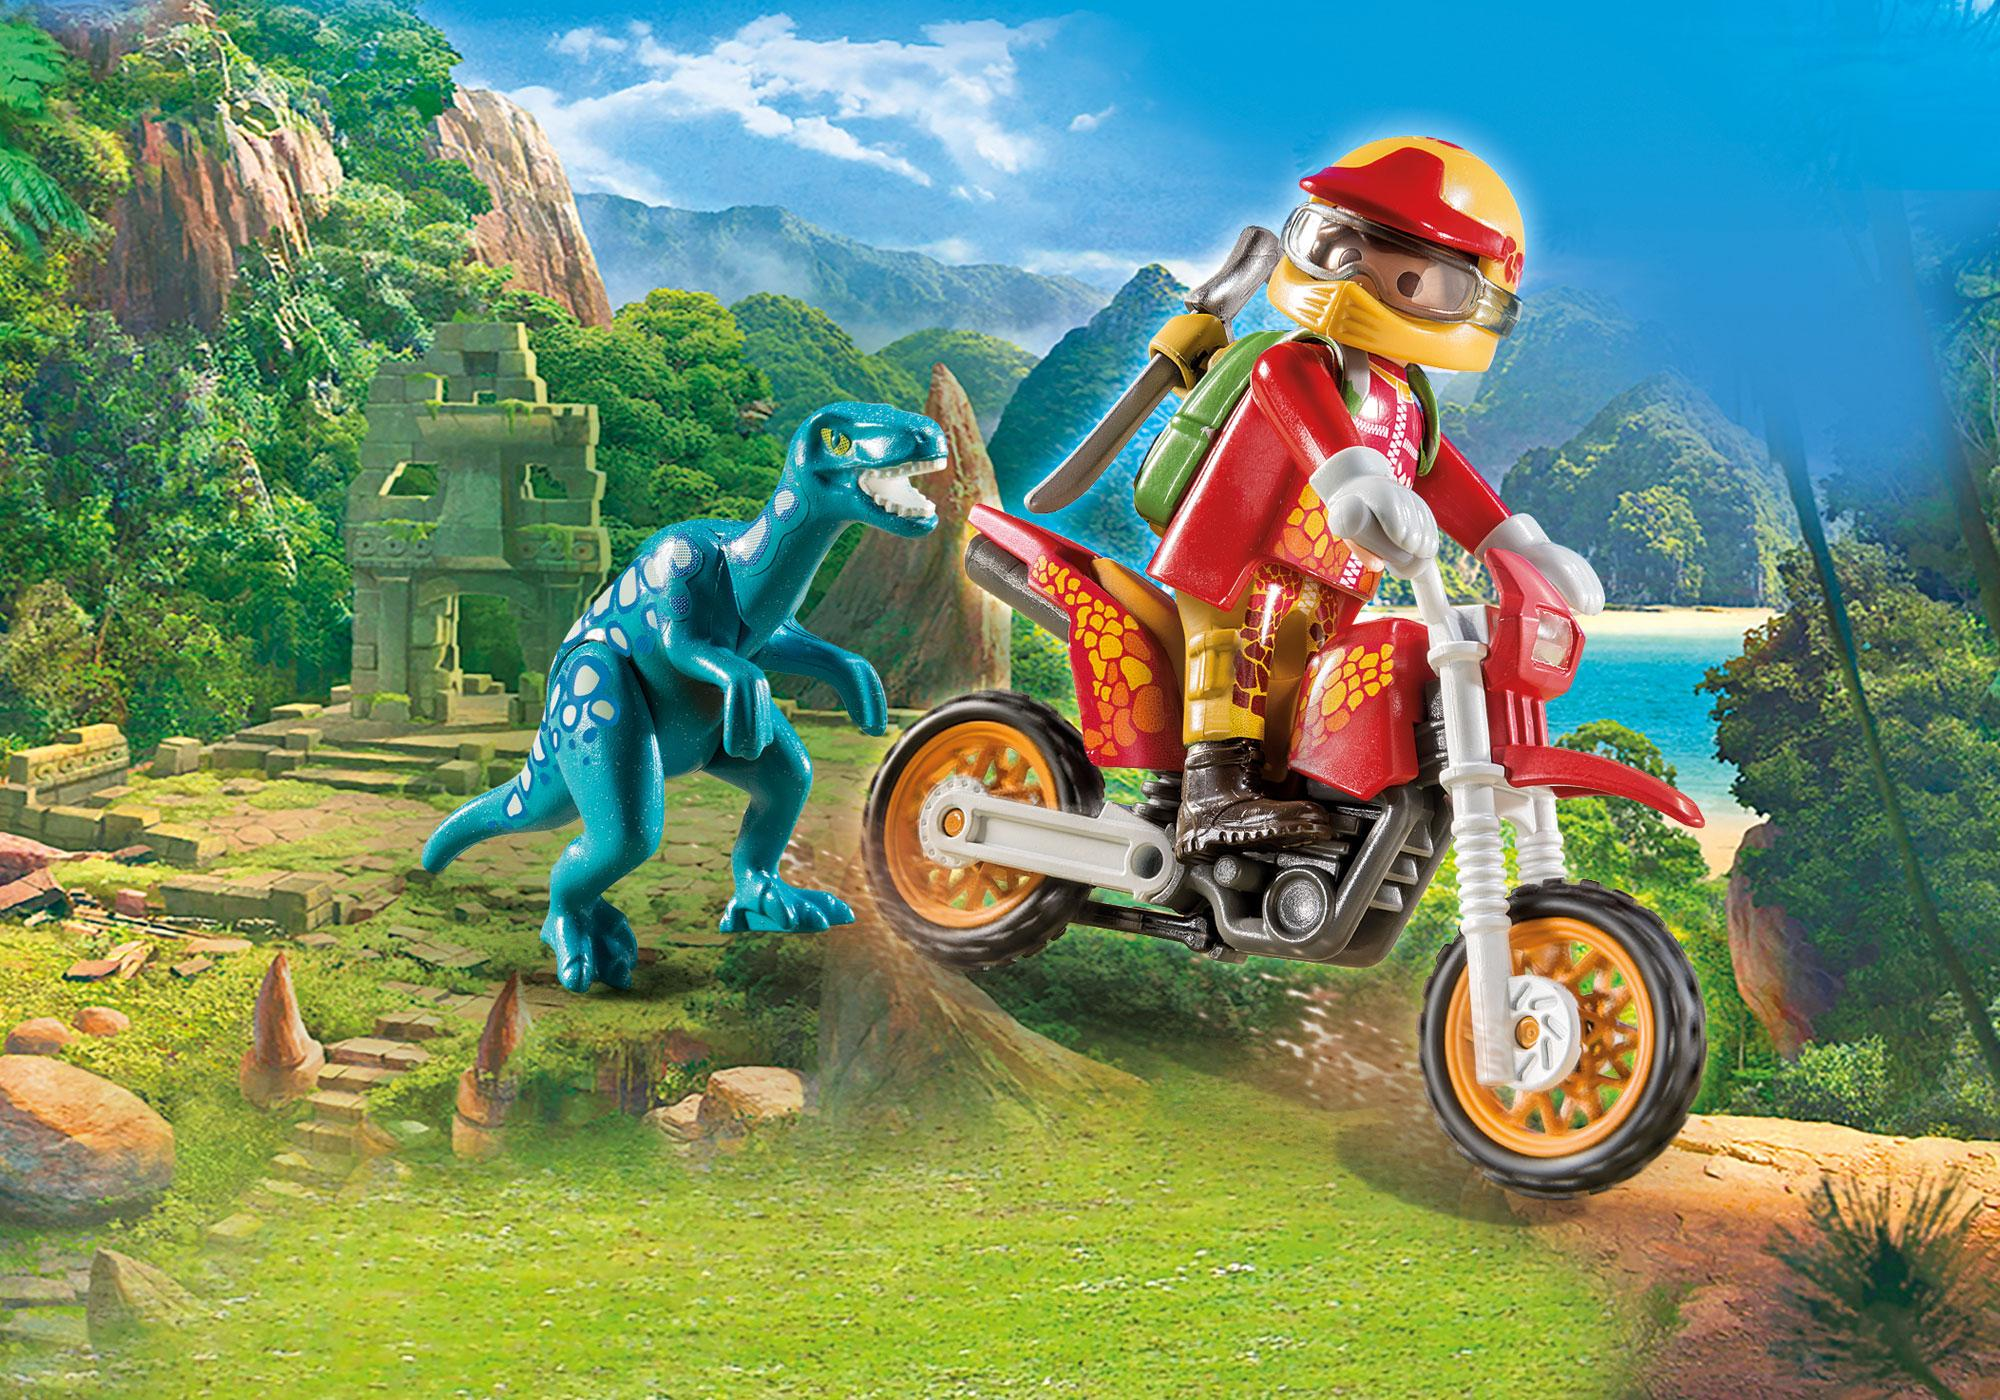 http://media.playmobil.com/i/playmobil/9431_product_detail/Motocross Bike with Raptor